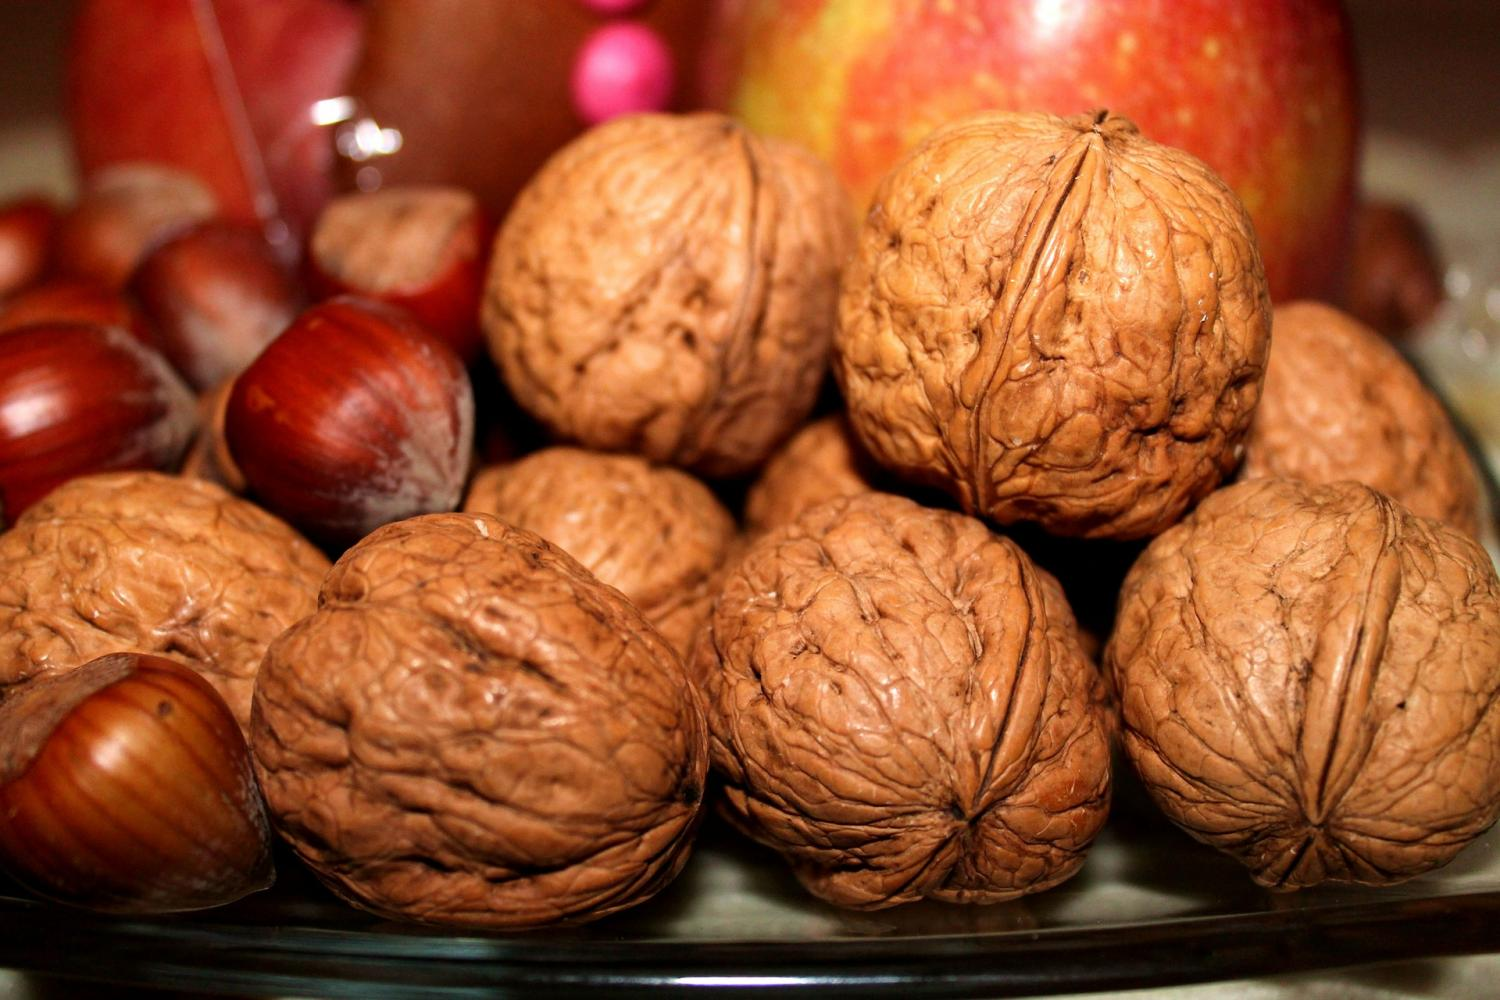 Certain Nuts May Help Ward Off Return Of Colon Cancer Study